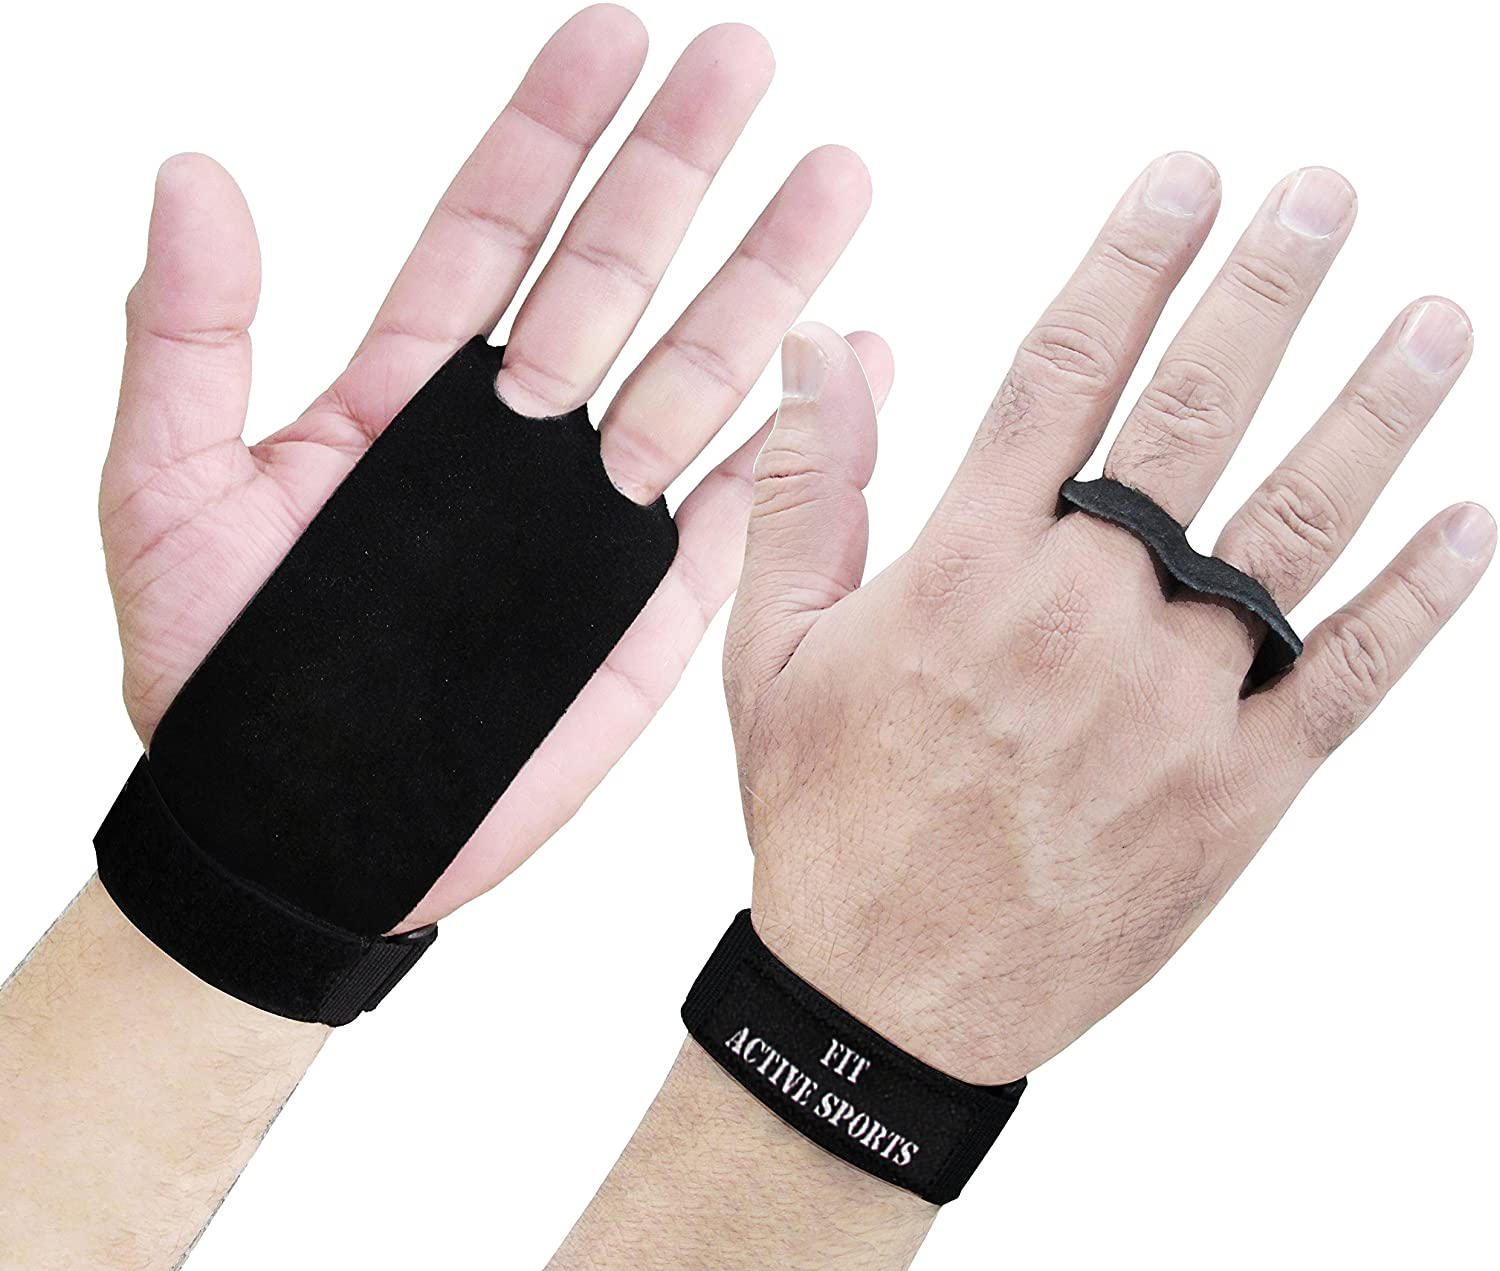 Protects Palms Black Suede Leather Neoprene Wrist support Training Gymnastics Grips Crossfit Hand Wrist Lift Gloves perfect for WOD pullups Weight Lifting Exercise Kettlebell Chin ups